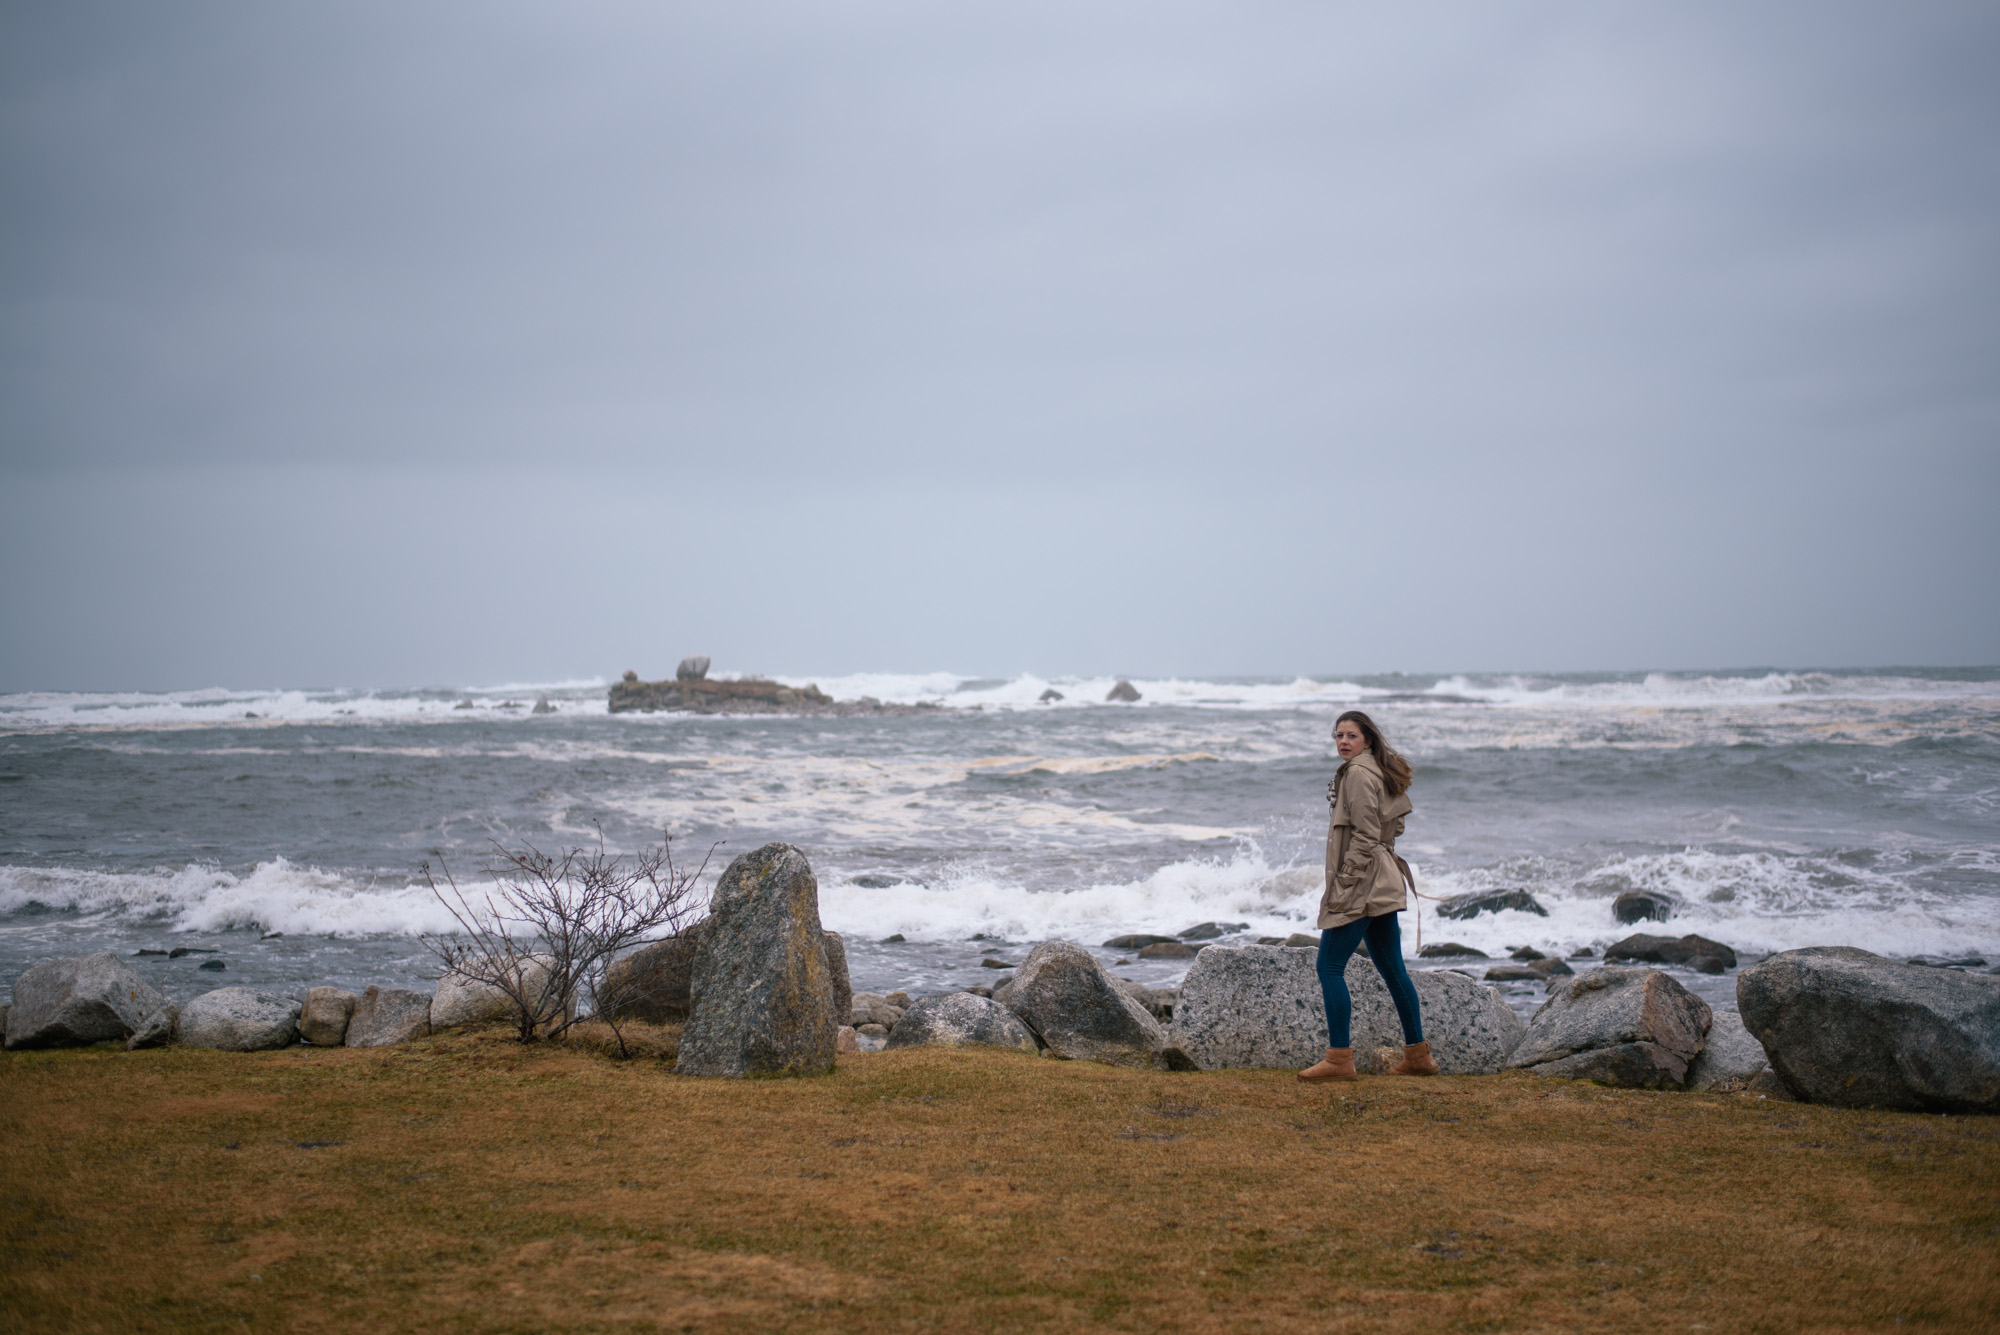 Wild Rosebuds: Our stay at Oceanstoe Seaside Resort in Peggy's Cove, Nova Scotia